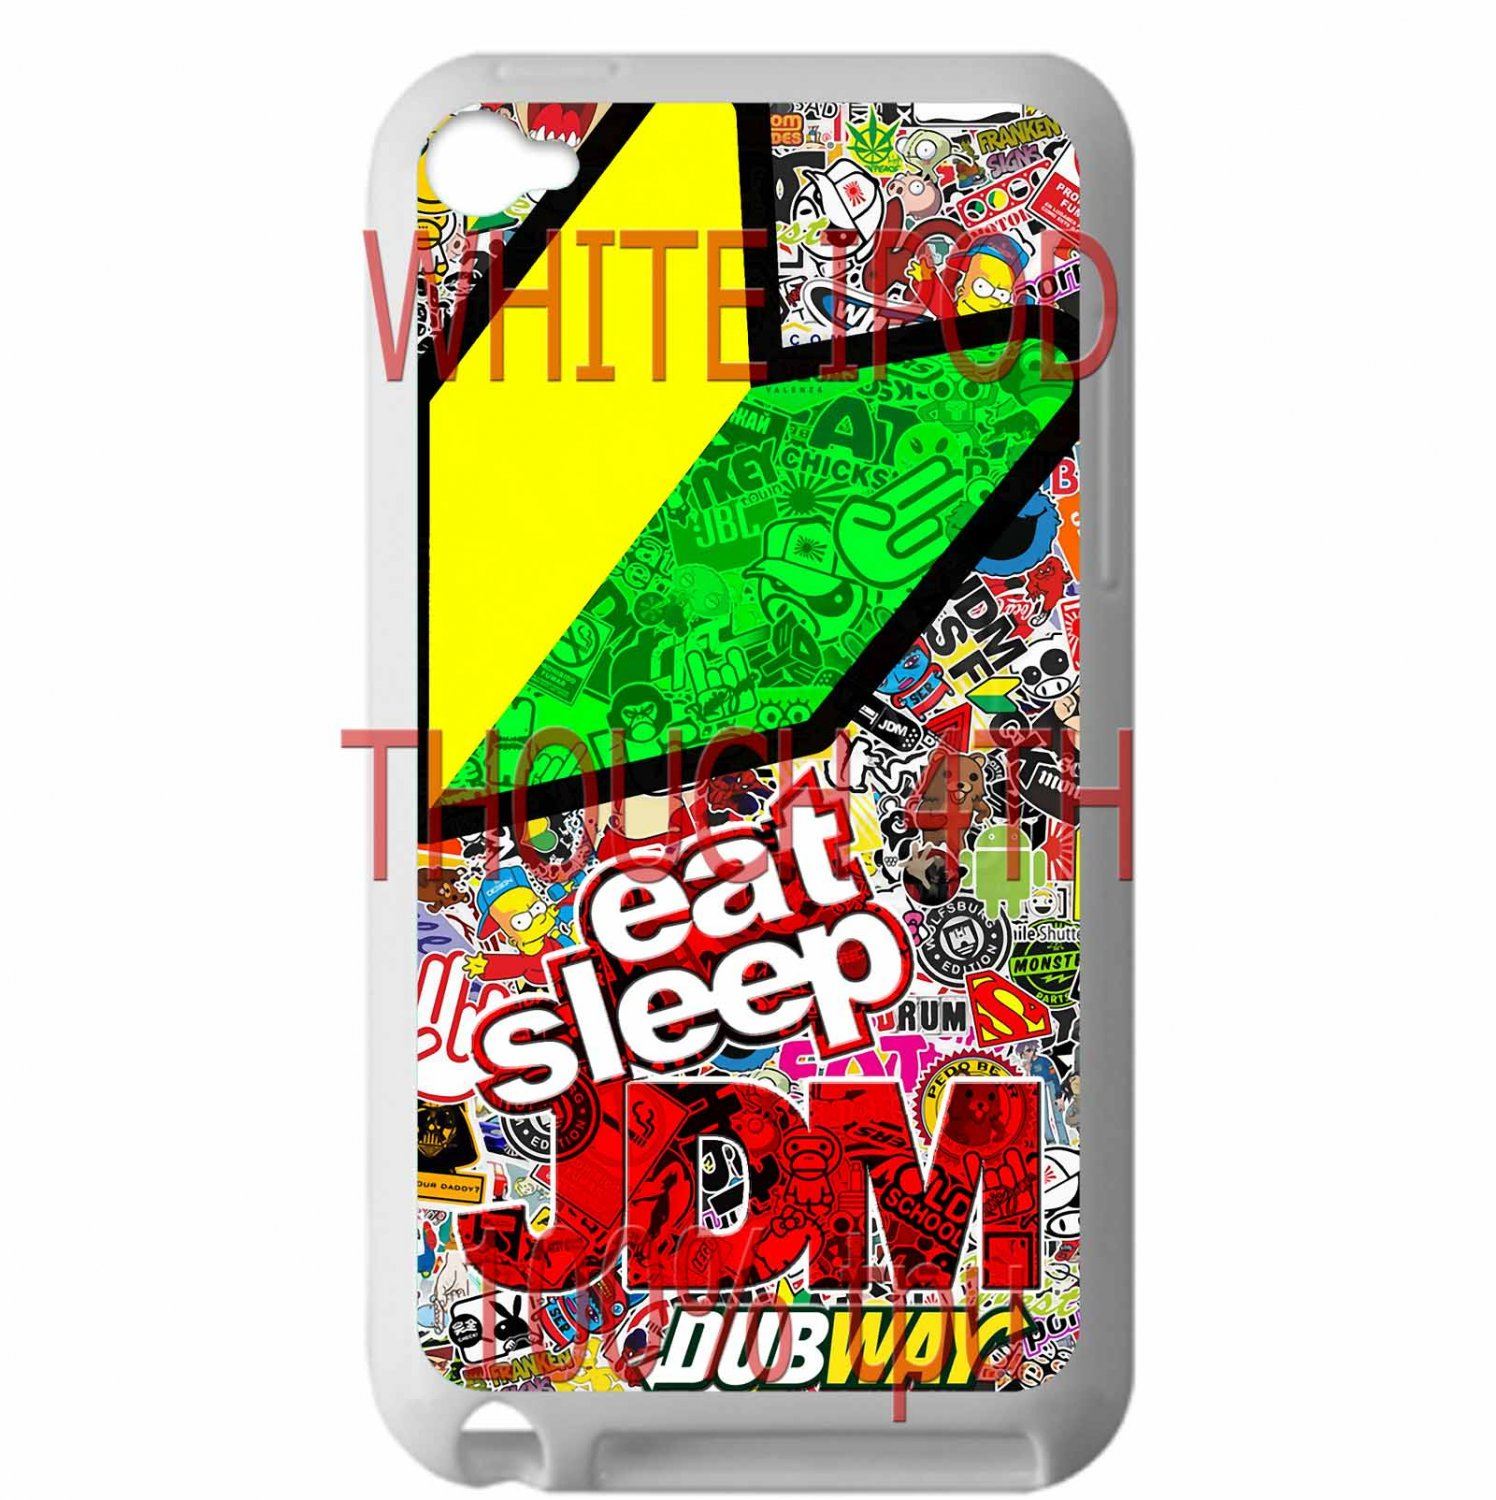 Eat Sleep JDM sticker bomb motocross dubway fit for ipod touch 4 white case cover